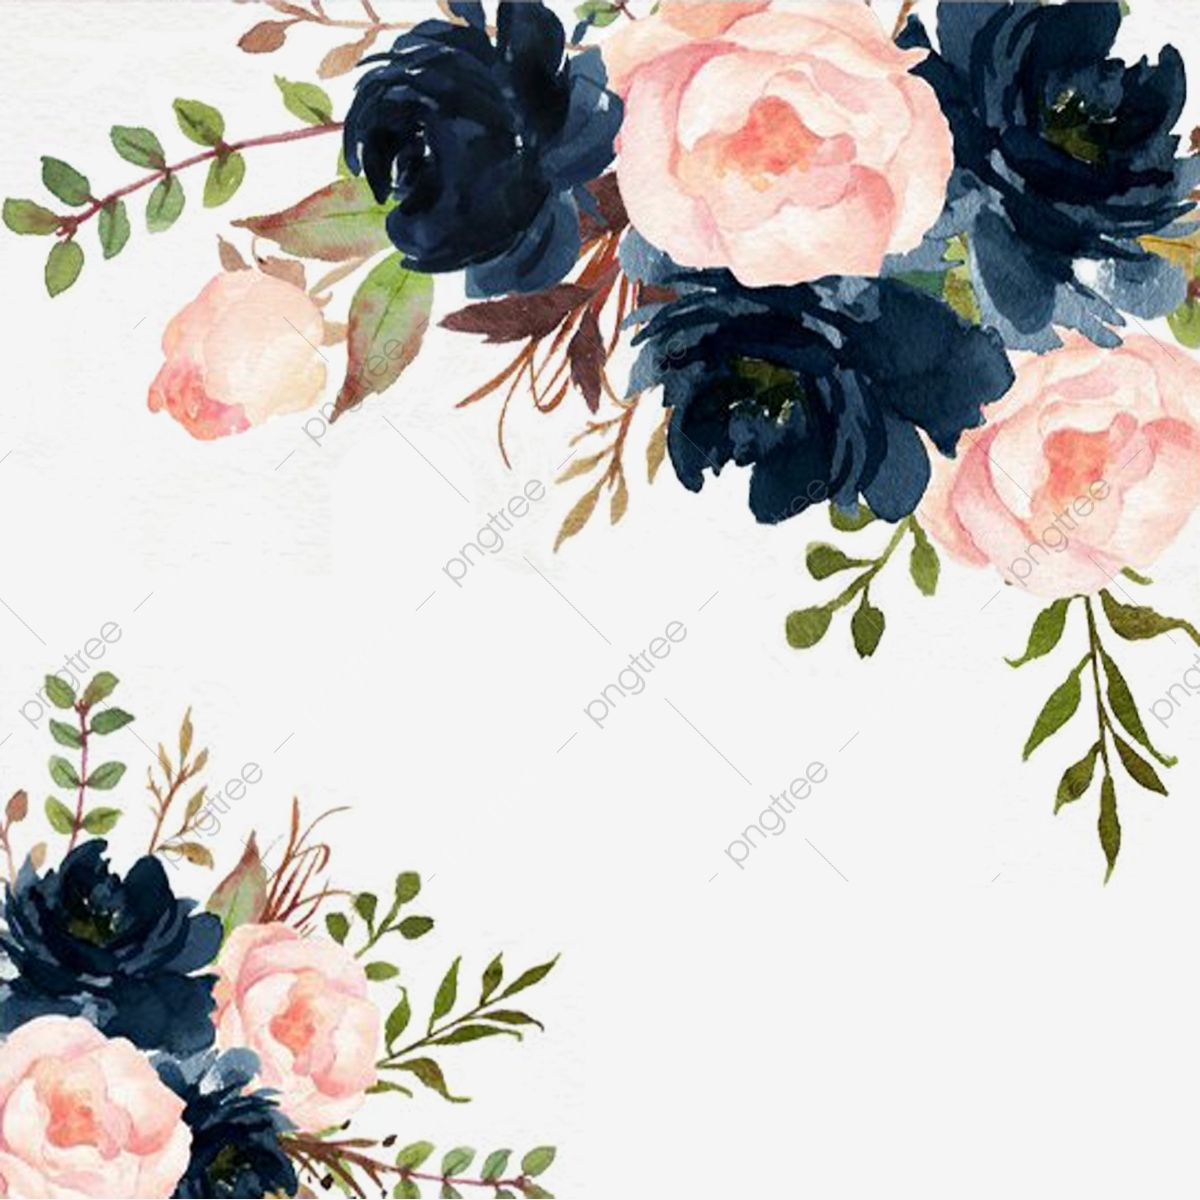 Watercolor Flowers In 2020 Watercolor Flower Vector Watercolor